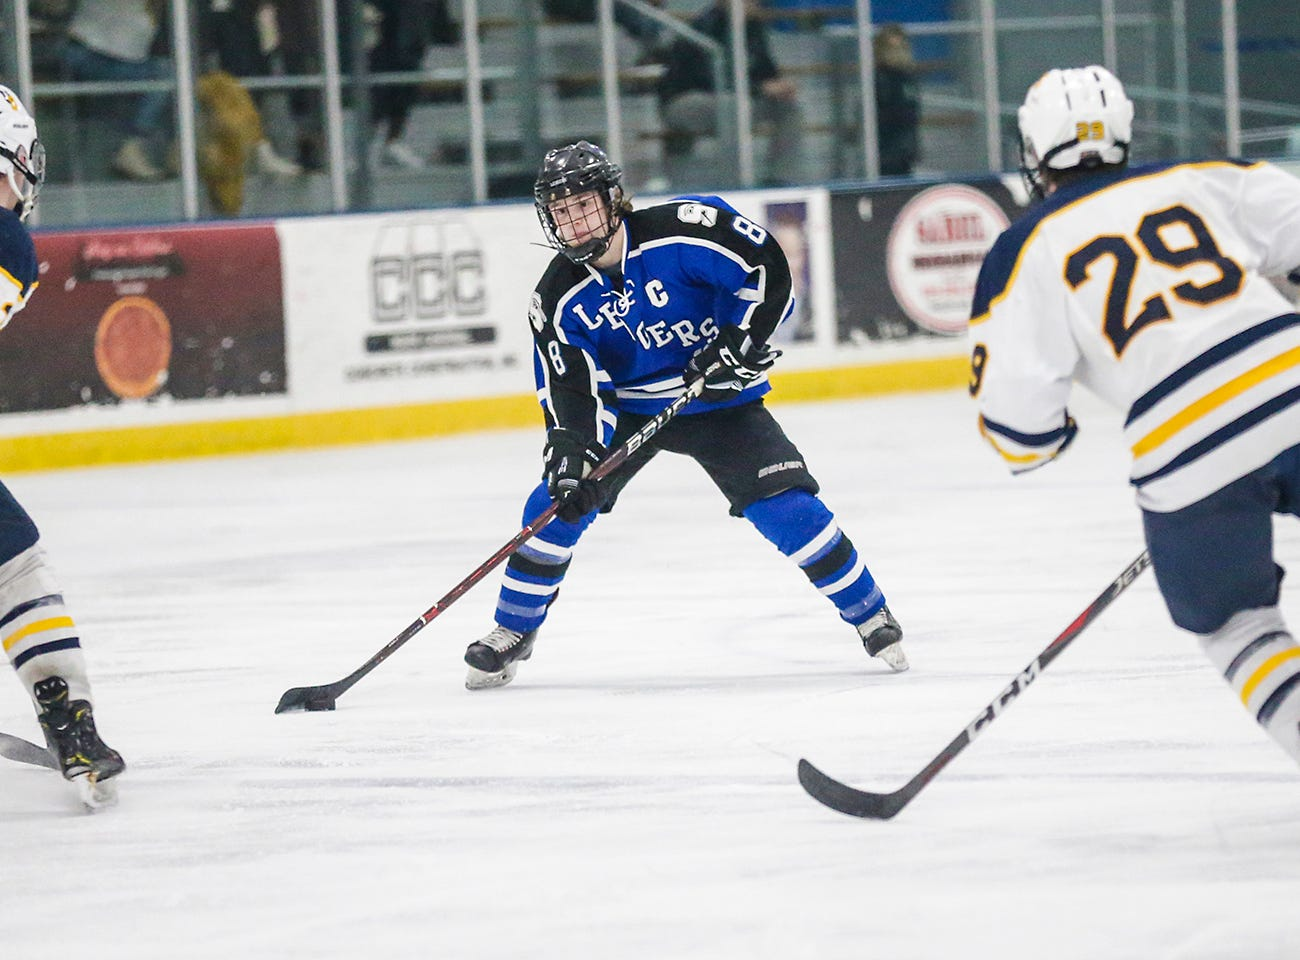 St. Mary's Springs boys co-op hockey's Zach Welsch (8) is defended by University School of Milwaukee's Robby Newton (13) and Alex Thundercloud (29) Friday, February 22, 2019 during their WIAA sectional final game in Fond du Lac. University School won the game 6-1 and will advance to state. Doug Raflik/USA TODAY NETWORK-Wisconsin